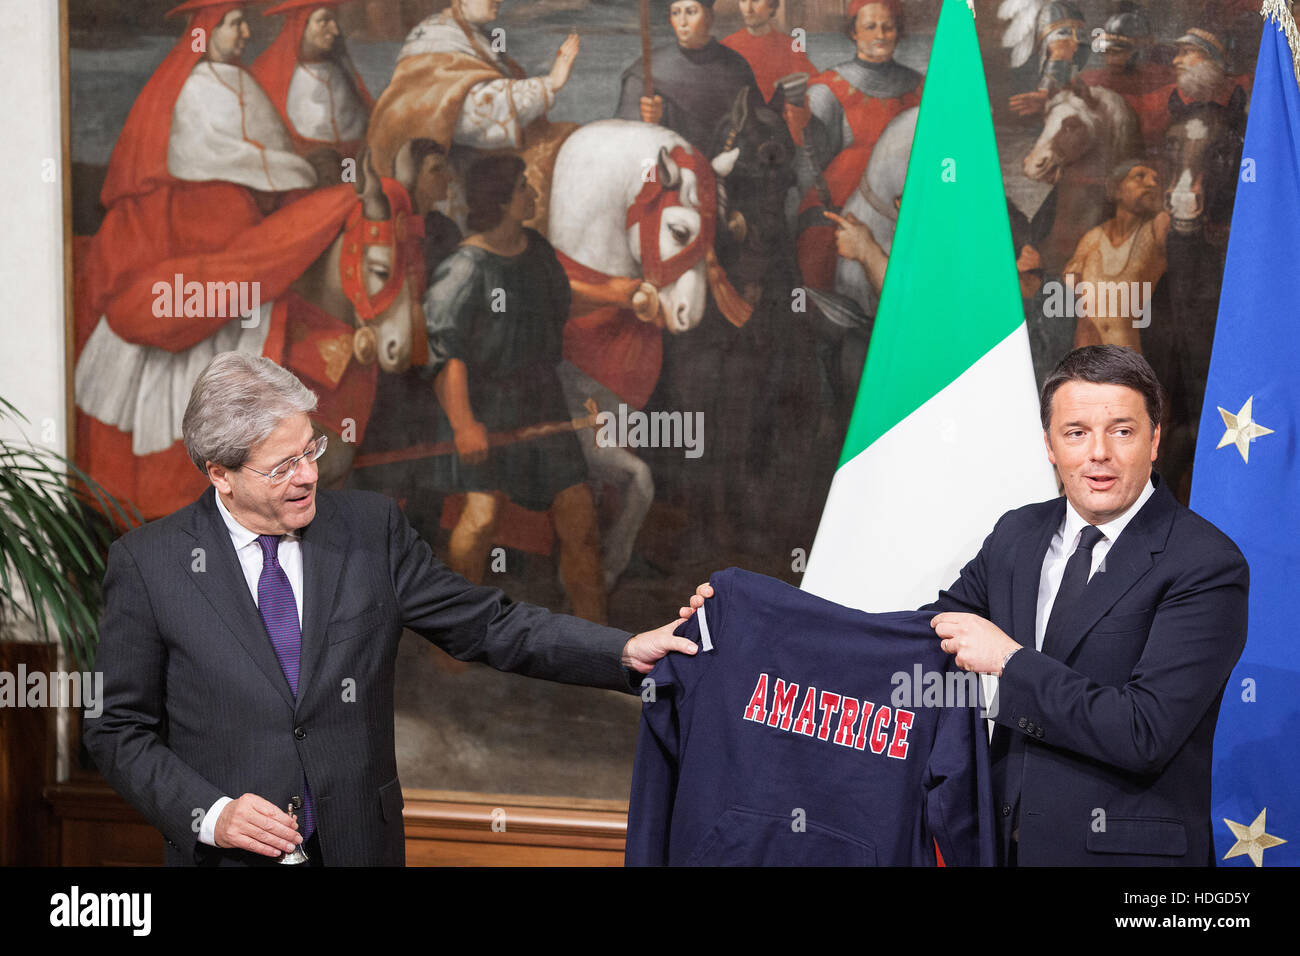 Rome, Italy. 12 December 2016. Matteo Renzi, Italy's outgoing prime minister, right, delivers a sweater reading - Stock Image